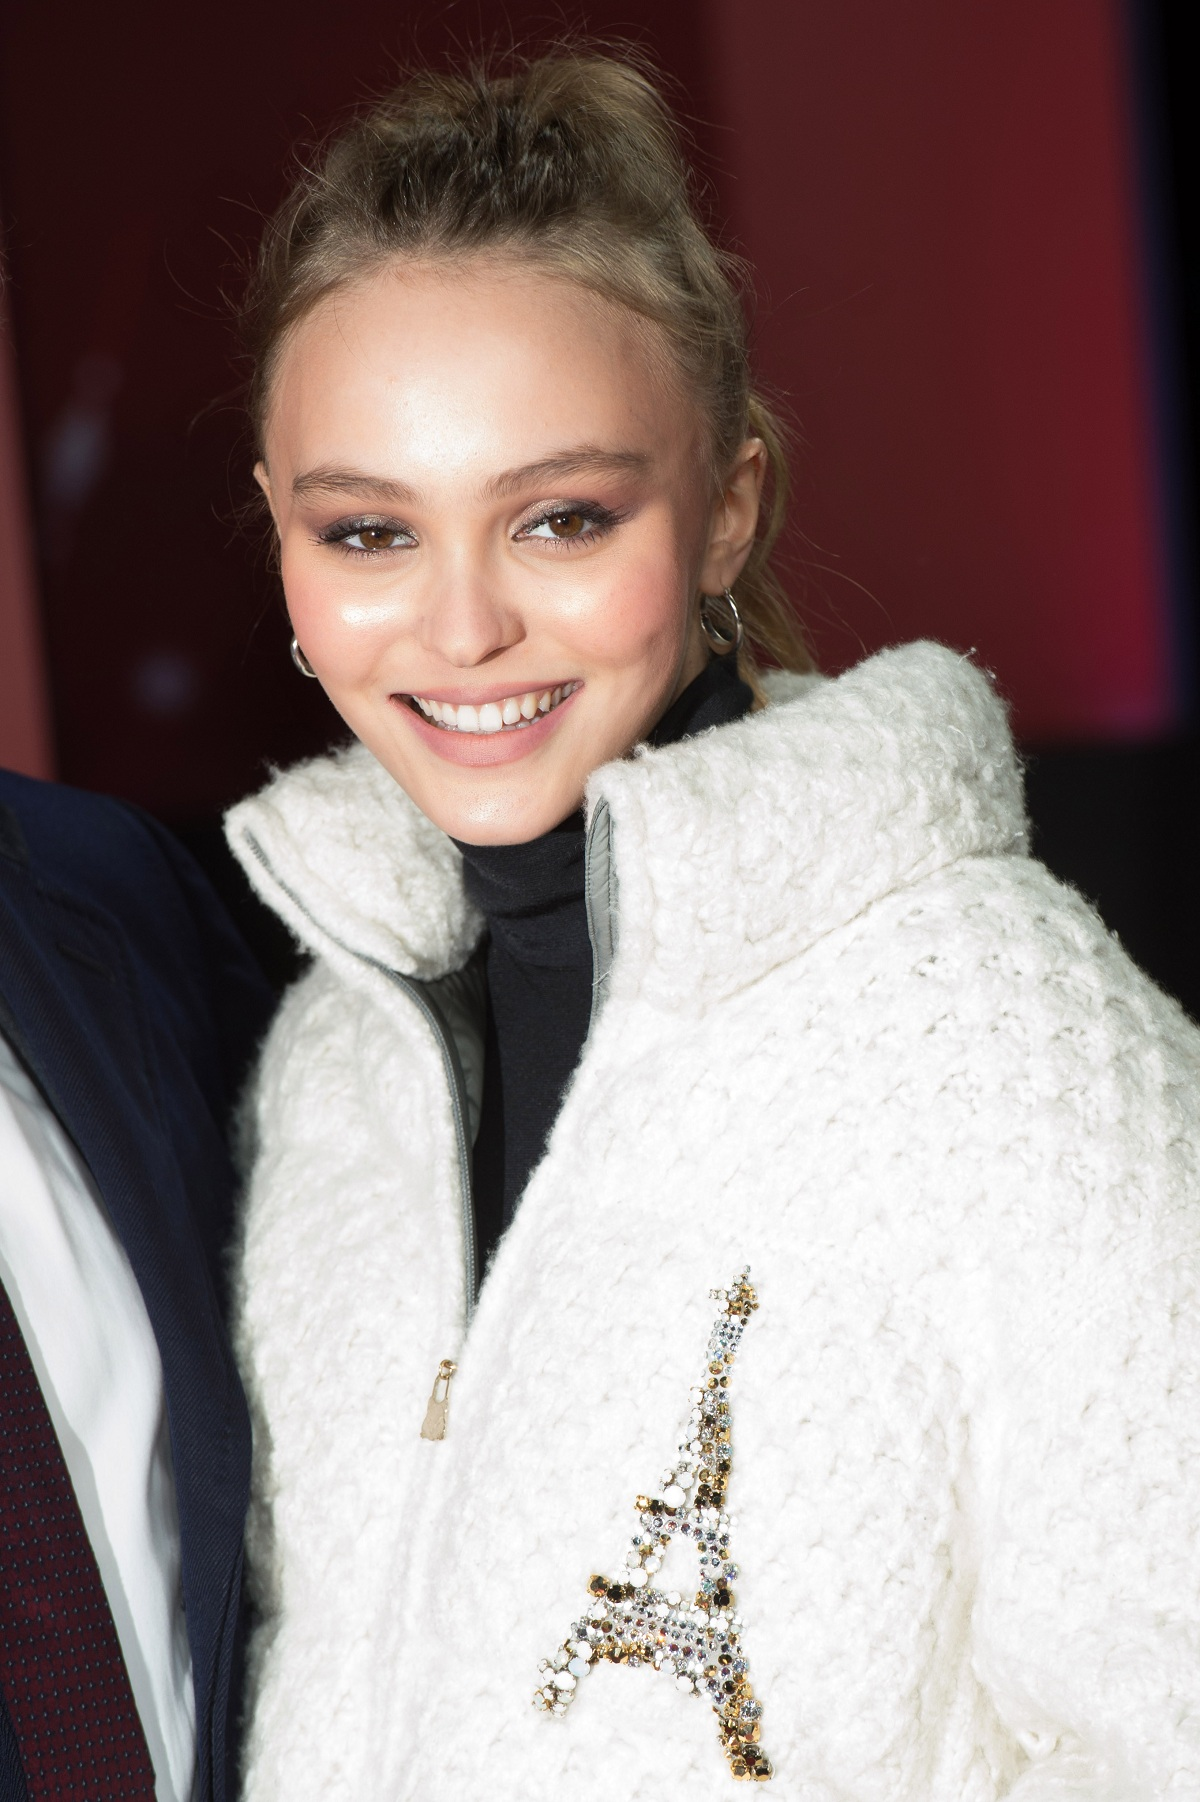 Lily-Rose DEPP Christmas Fashionela